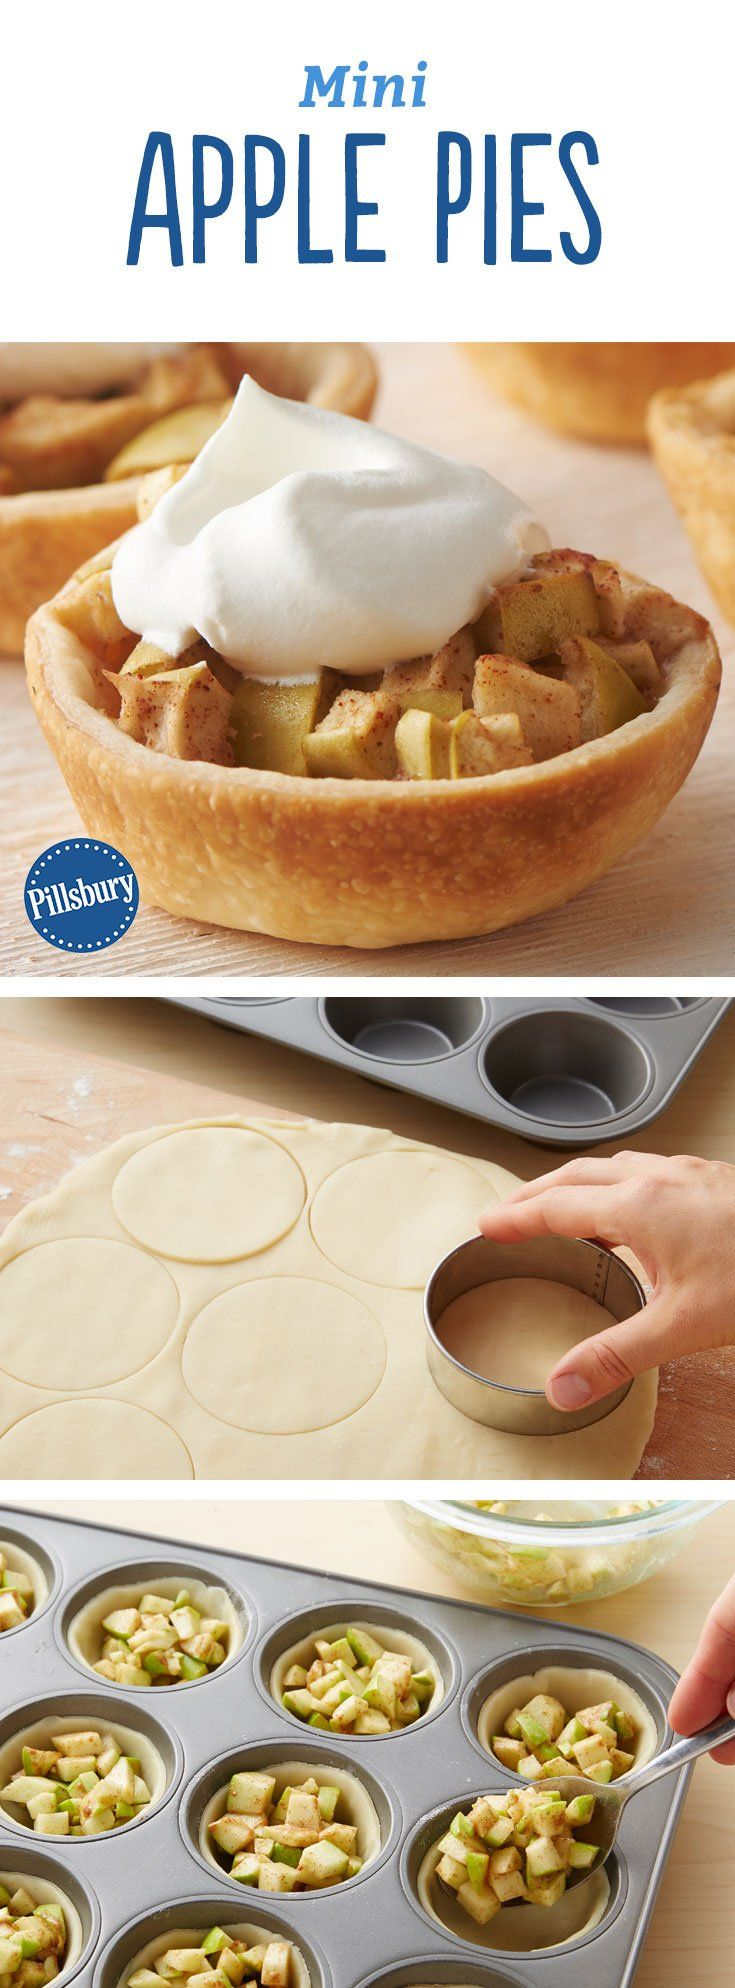 These adorable miniature apple pies are perfect for lunchboxes, dessert trays and surprise treats. Best of all, they can be made ahead! Expert tip: Have extra pie crust? There will probably be a little leftover. Roll it out and use mini pie cutters to cut pieces. Then place them on top of the mini pies before baking.